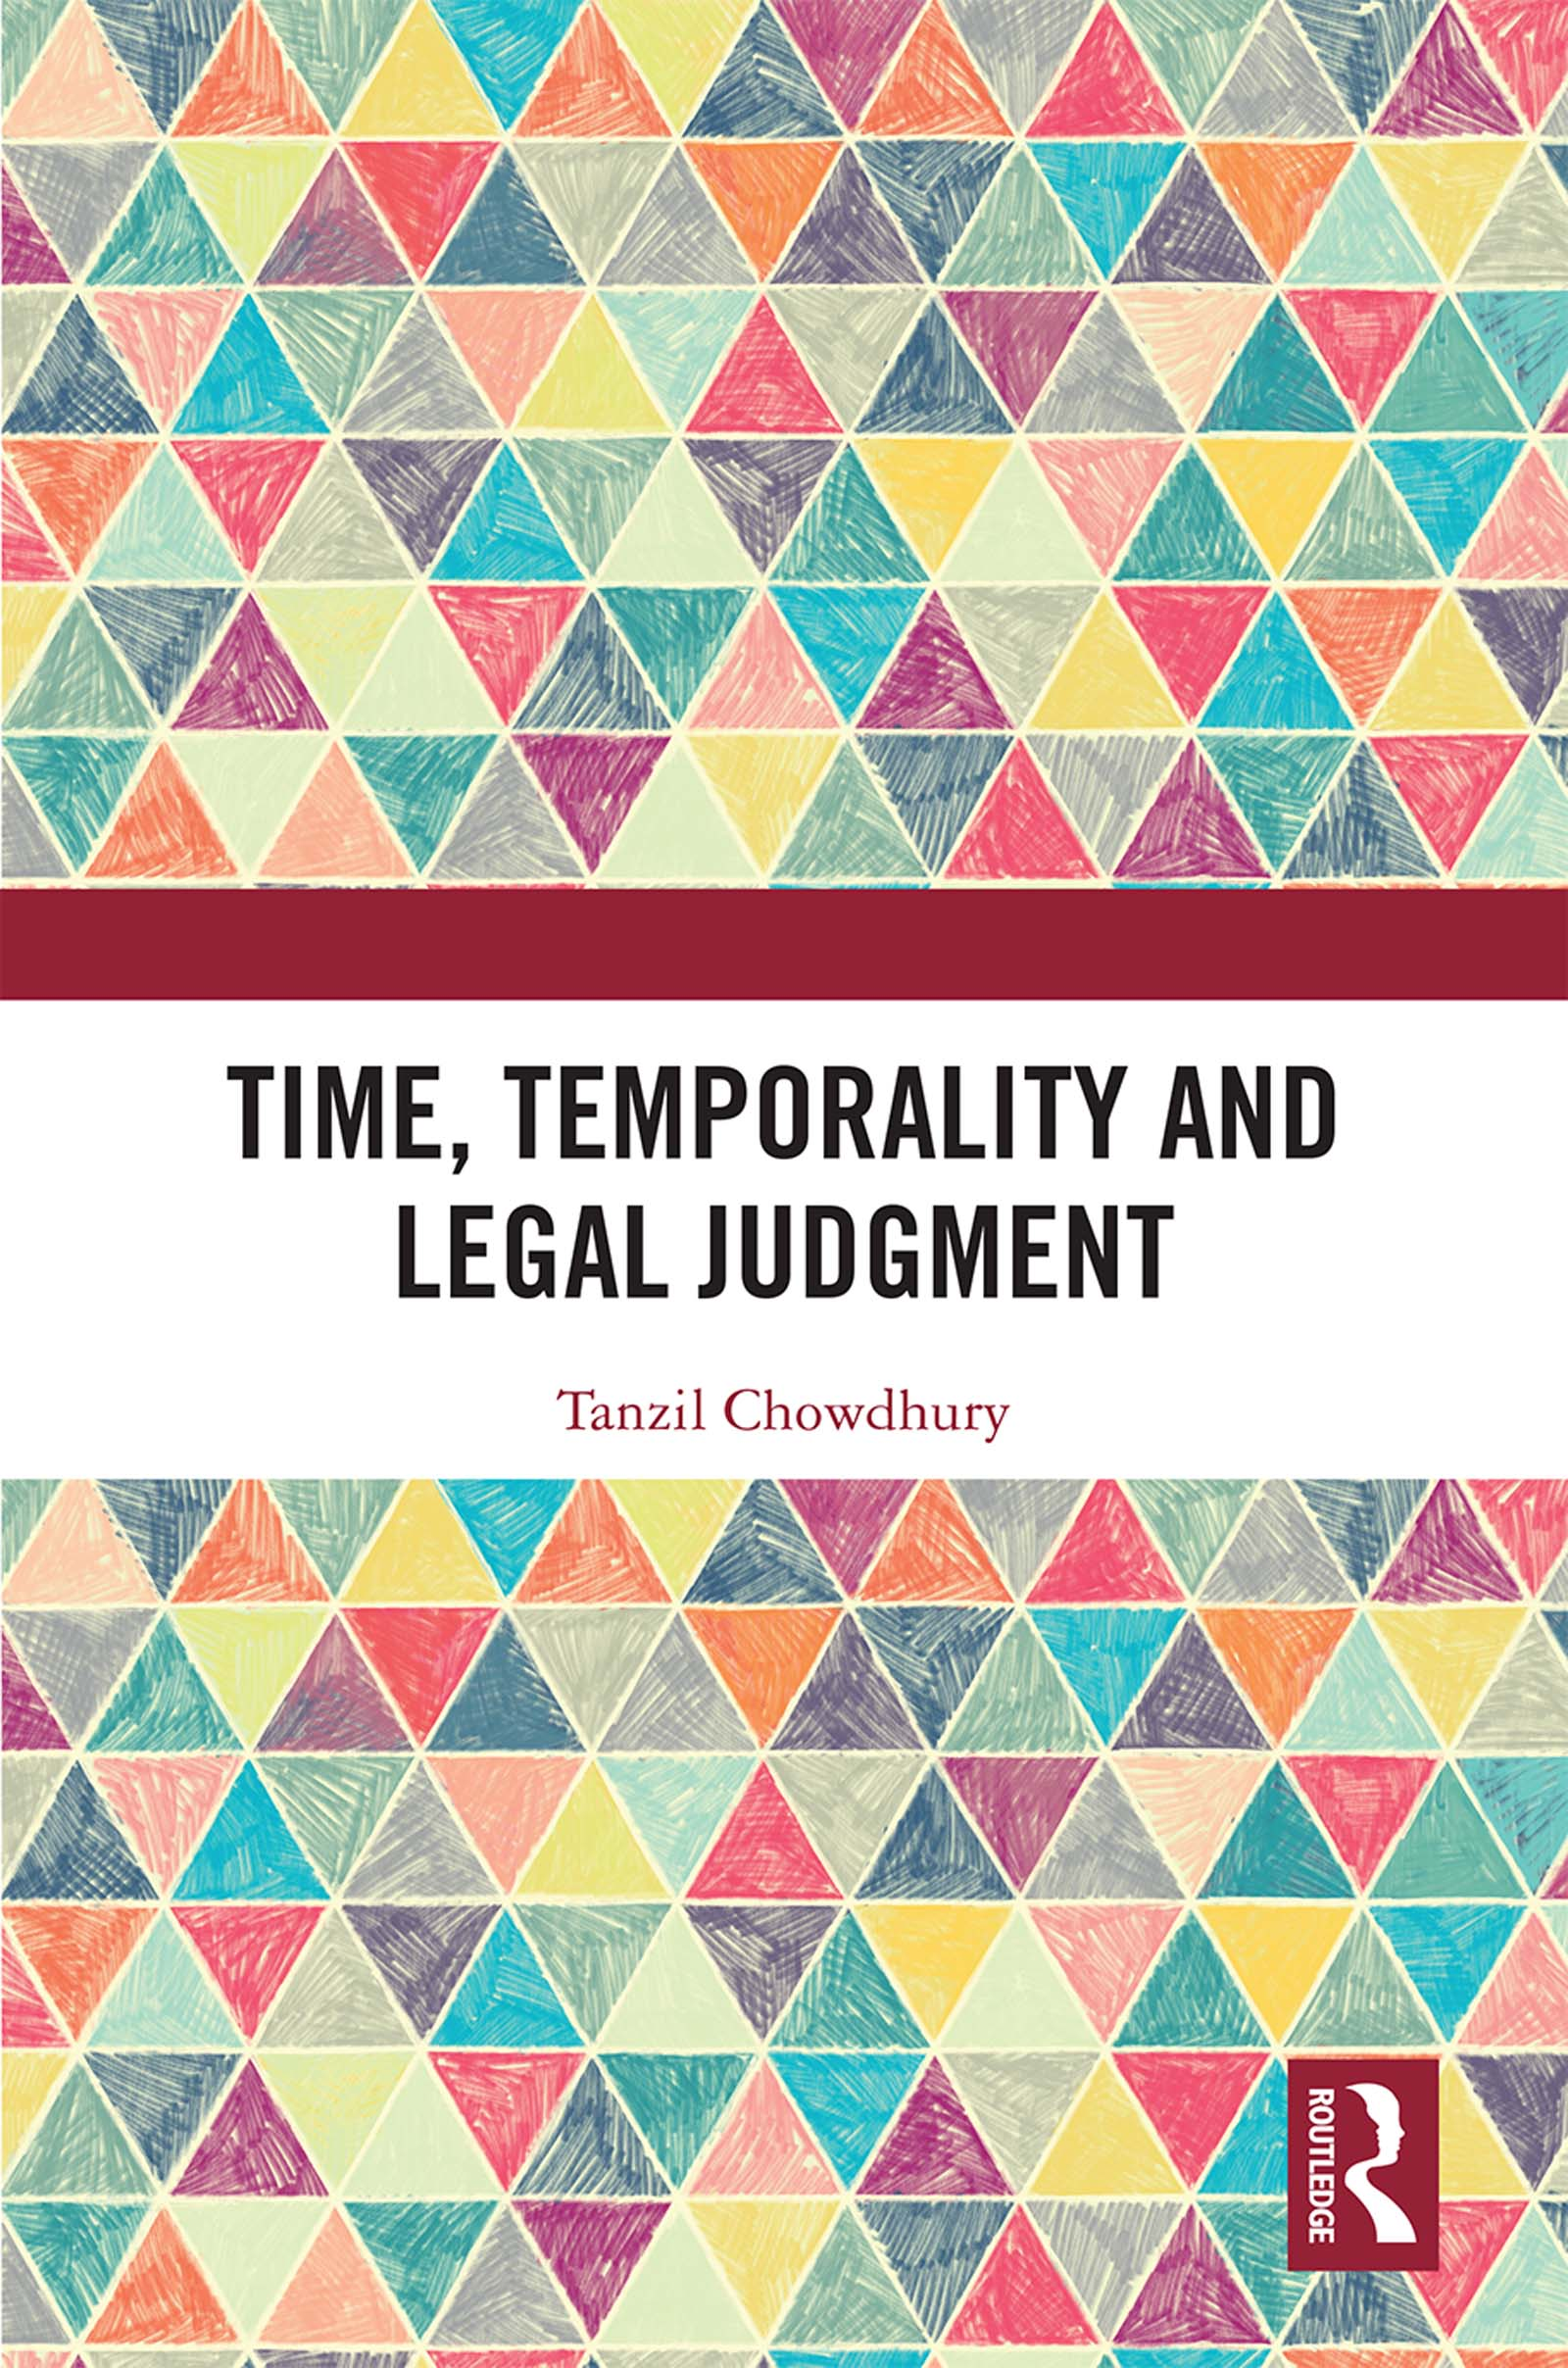 The temporalities of abstract legal judgment